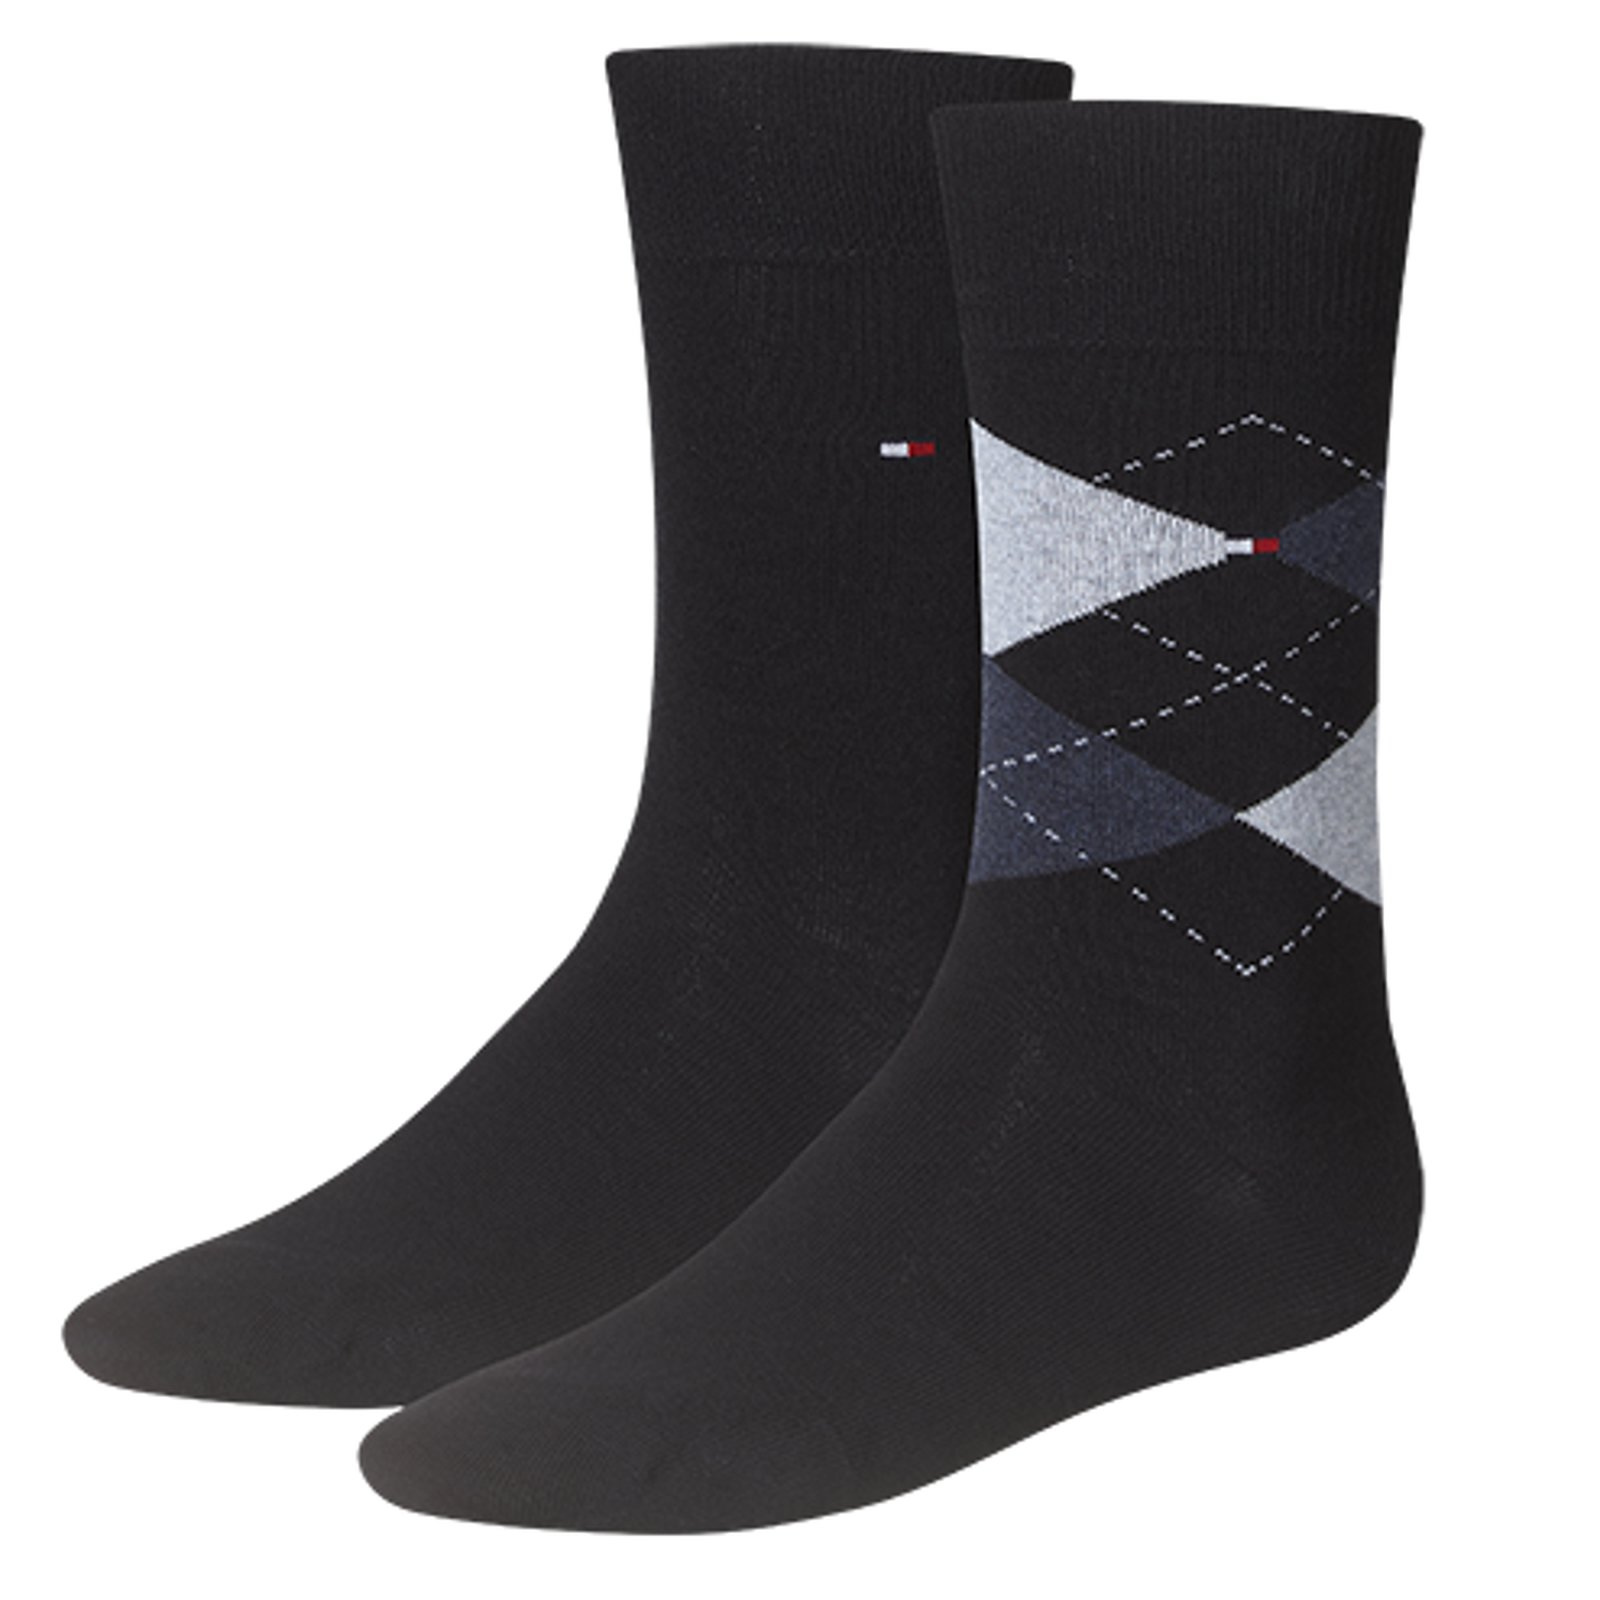 Tommy Hilfiger Socken - Check im 2er Pack dark navy 47-49